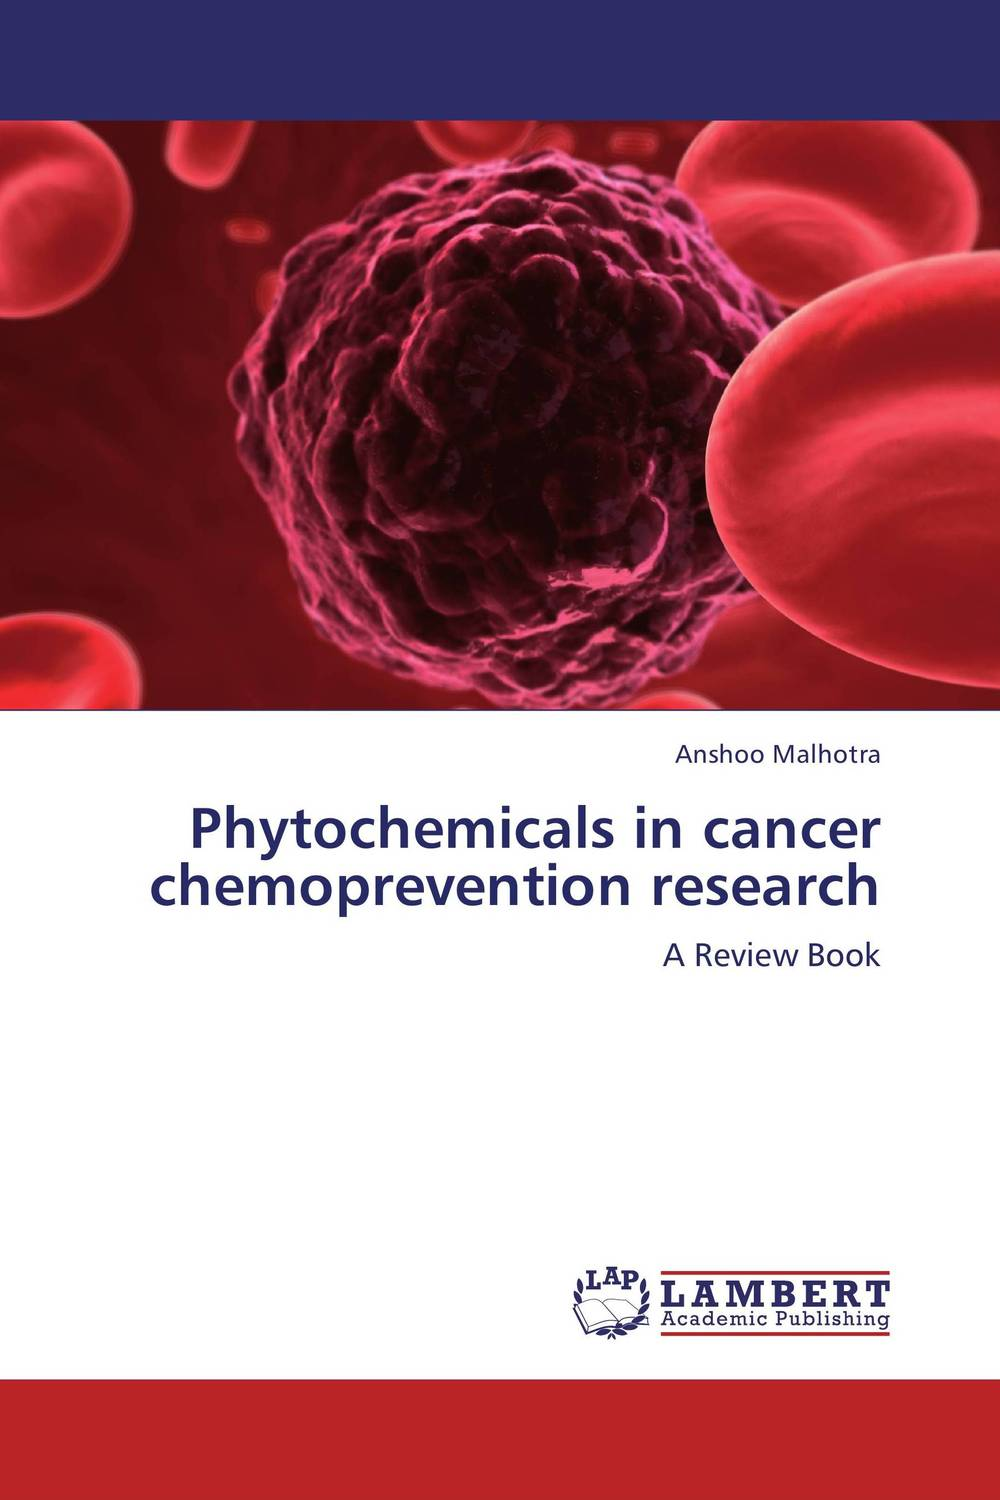 Phytochemicals in cancer chemoprevention research